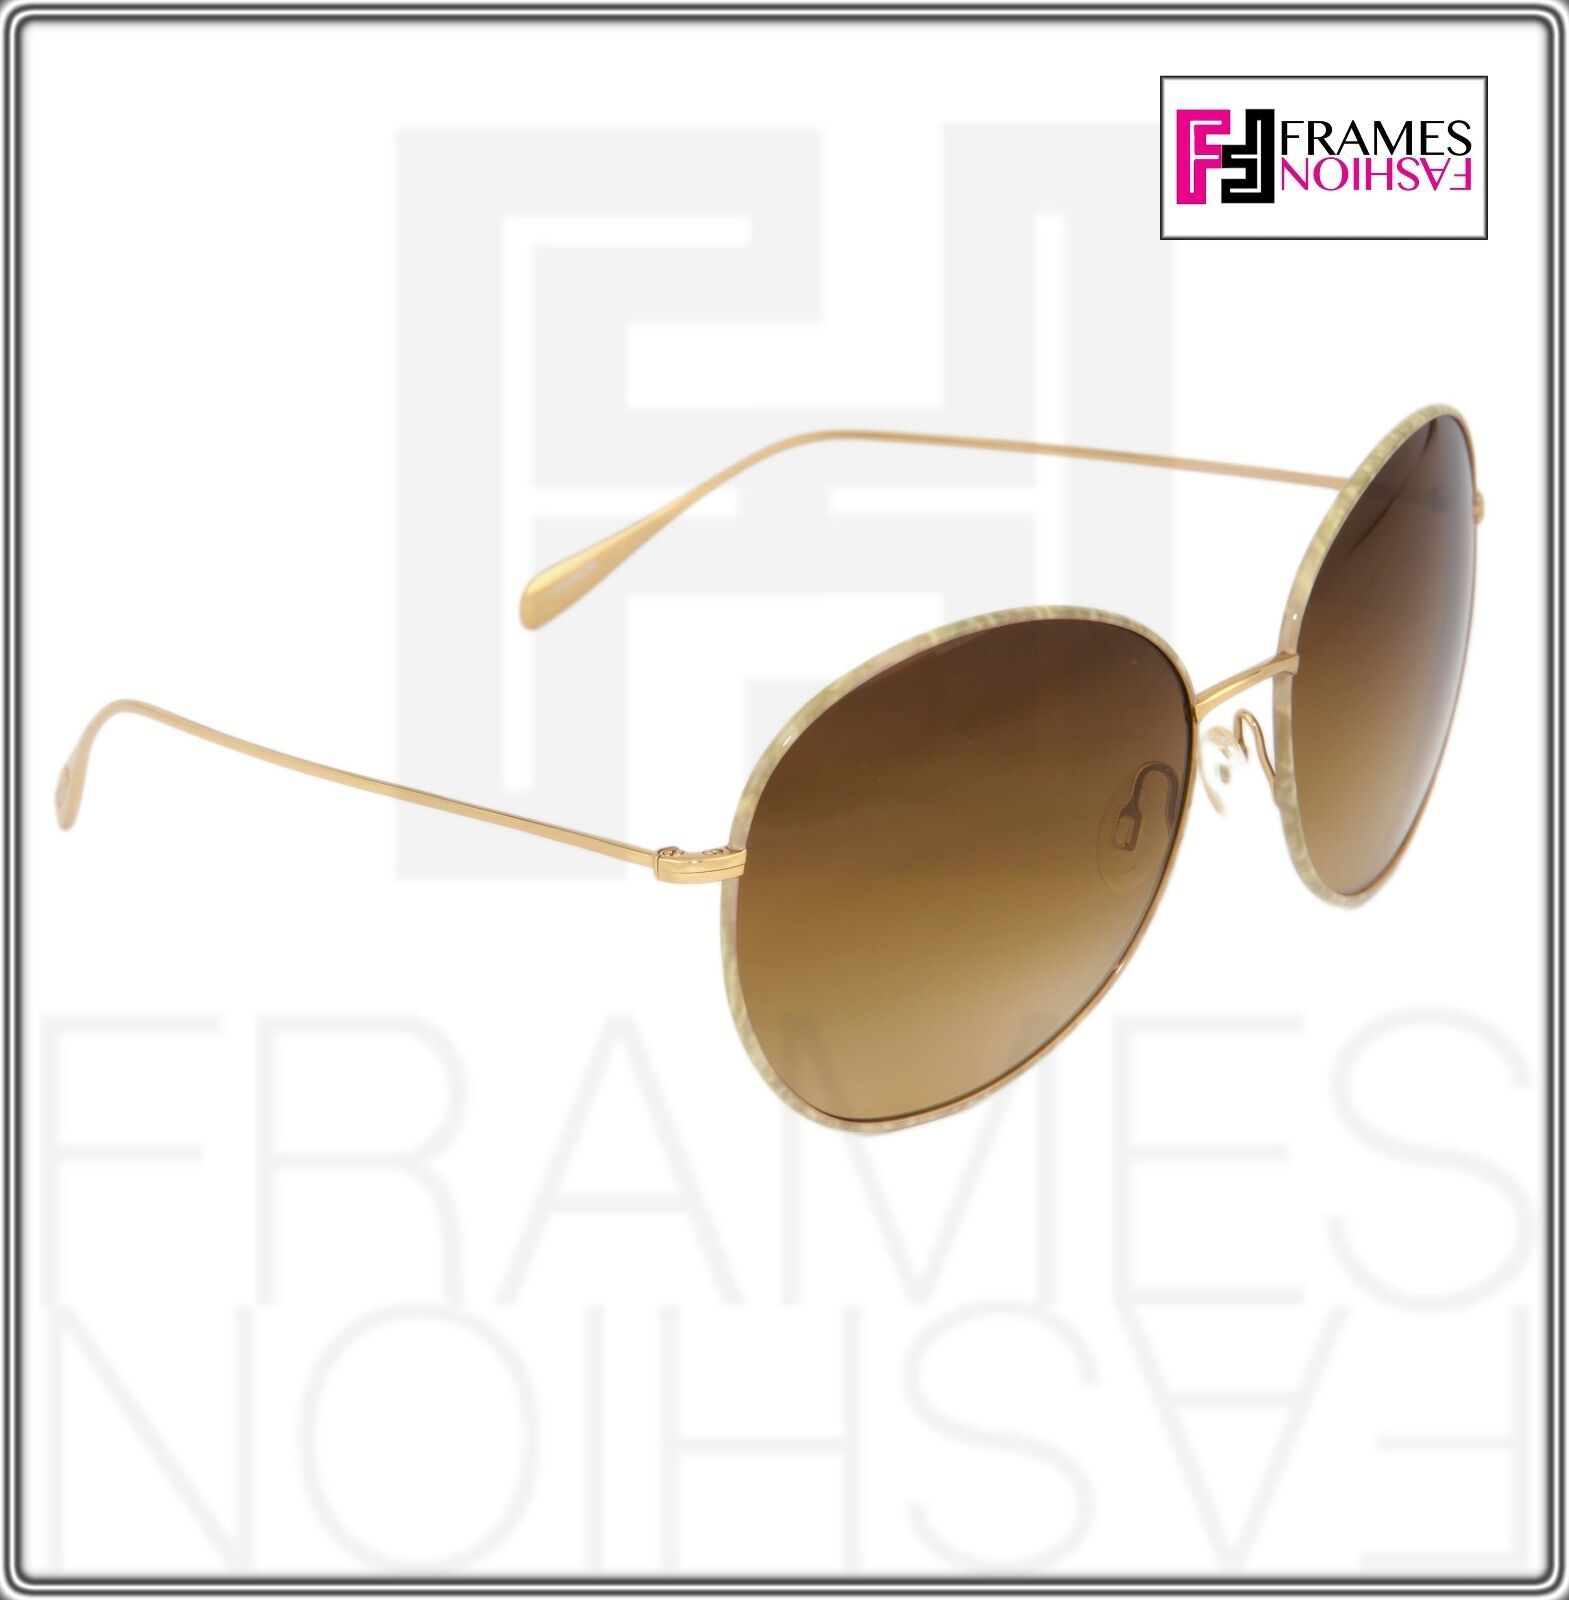 OLIVER PEOPLES BLONDELL 1102 Gold Titanium Brown Beige Polarized Sunglass 1102ST image 7